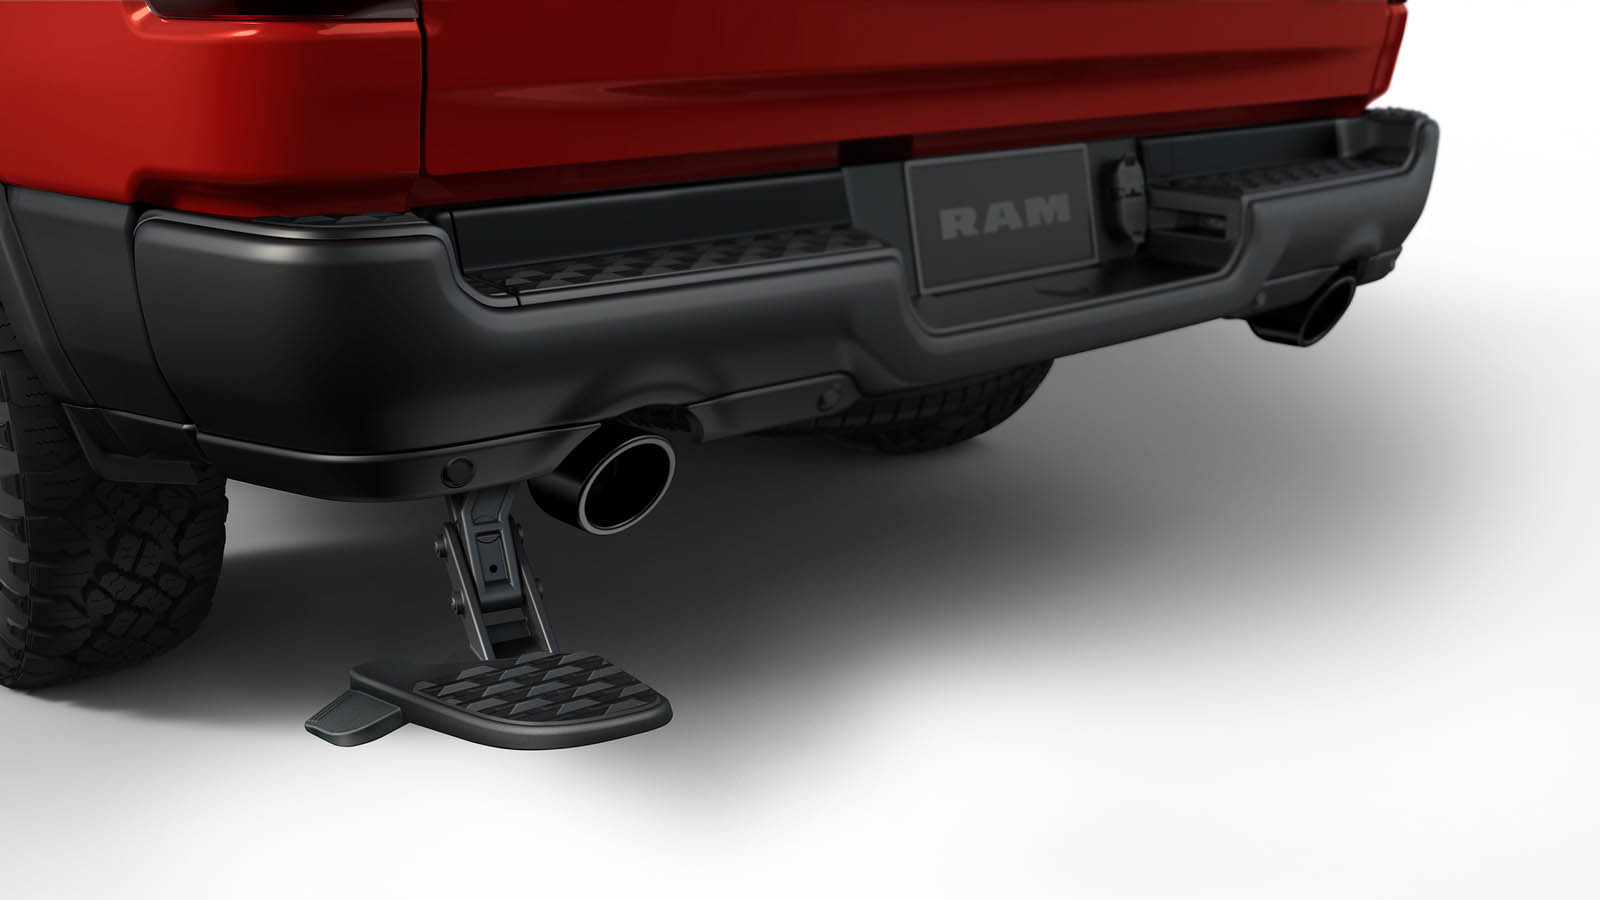 2019 Ram 1500 – Mopar Bed Step